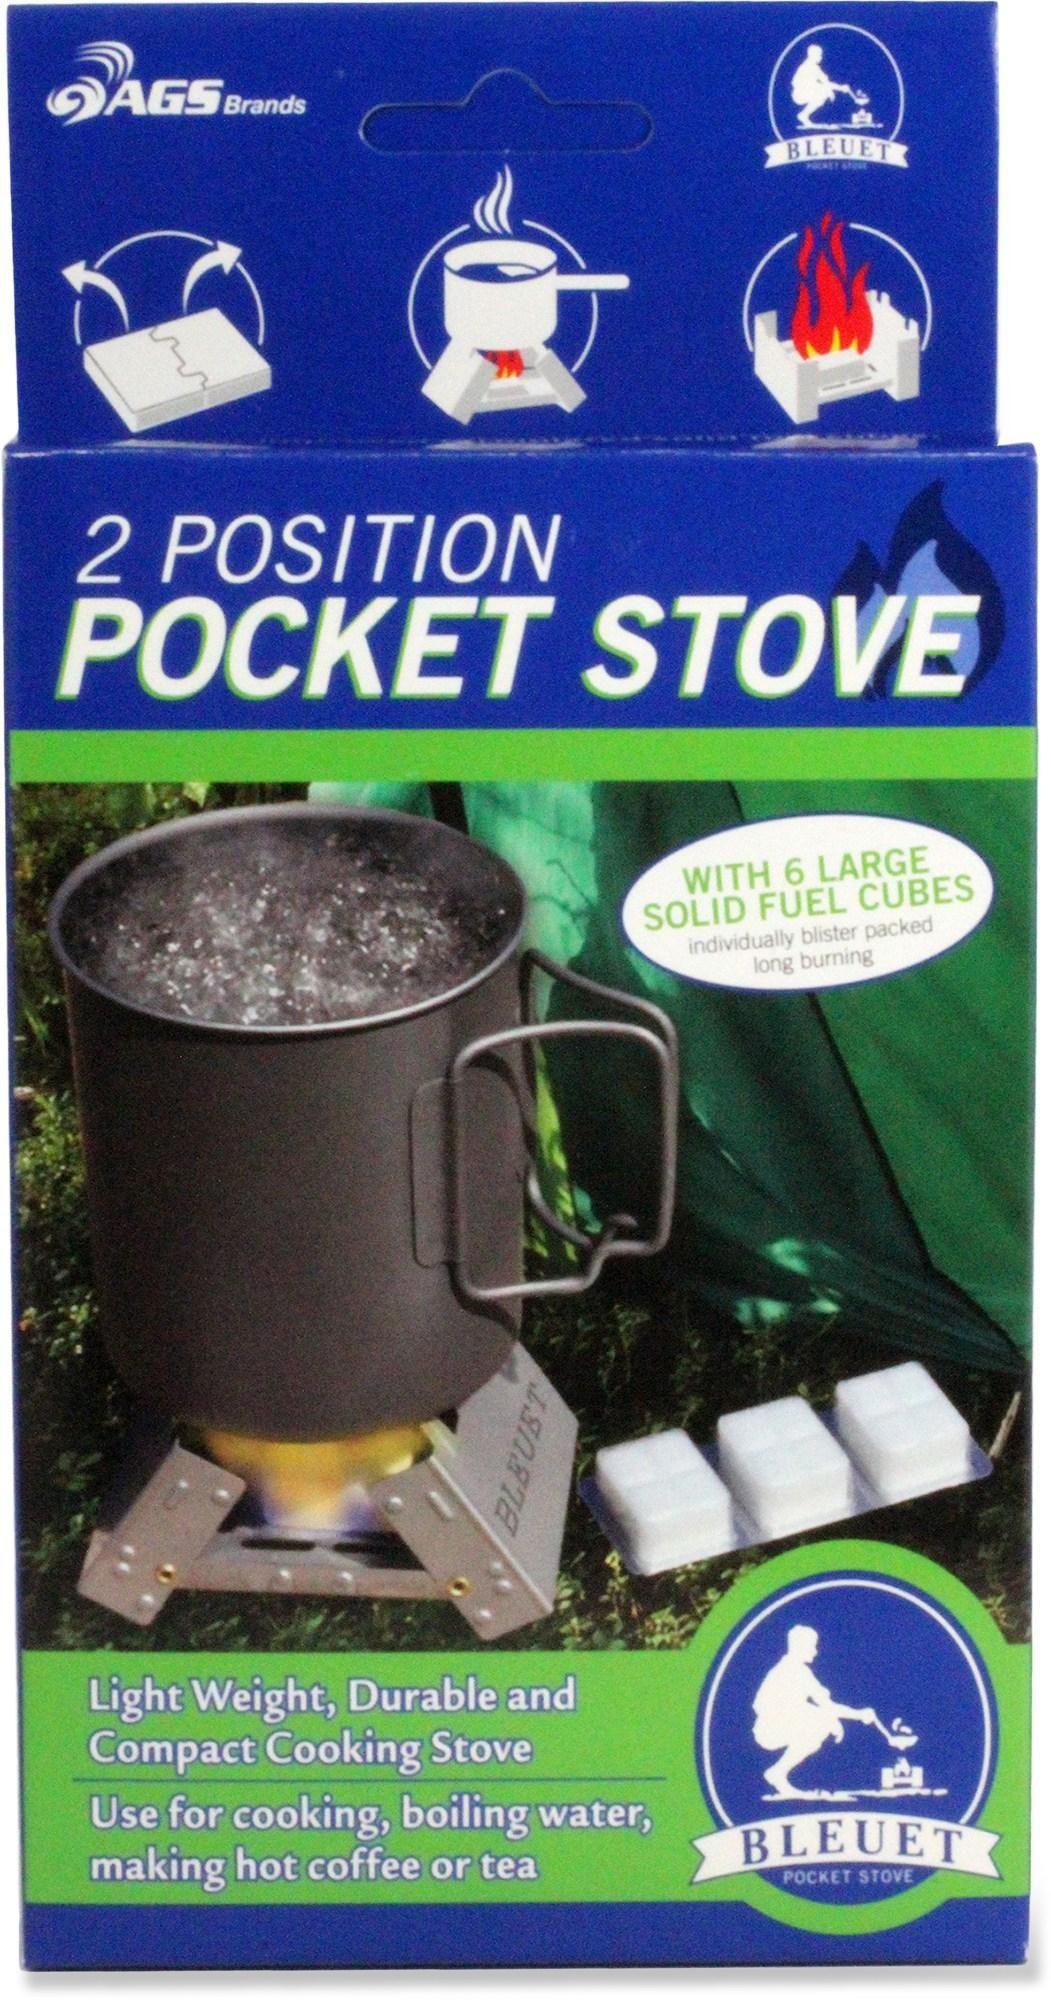 The Bleuet Pocket Stove and Fuel works great in a pinch! REI ...